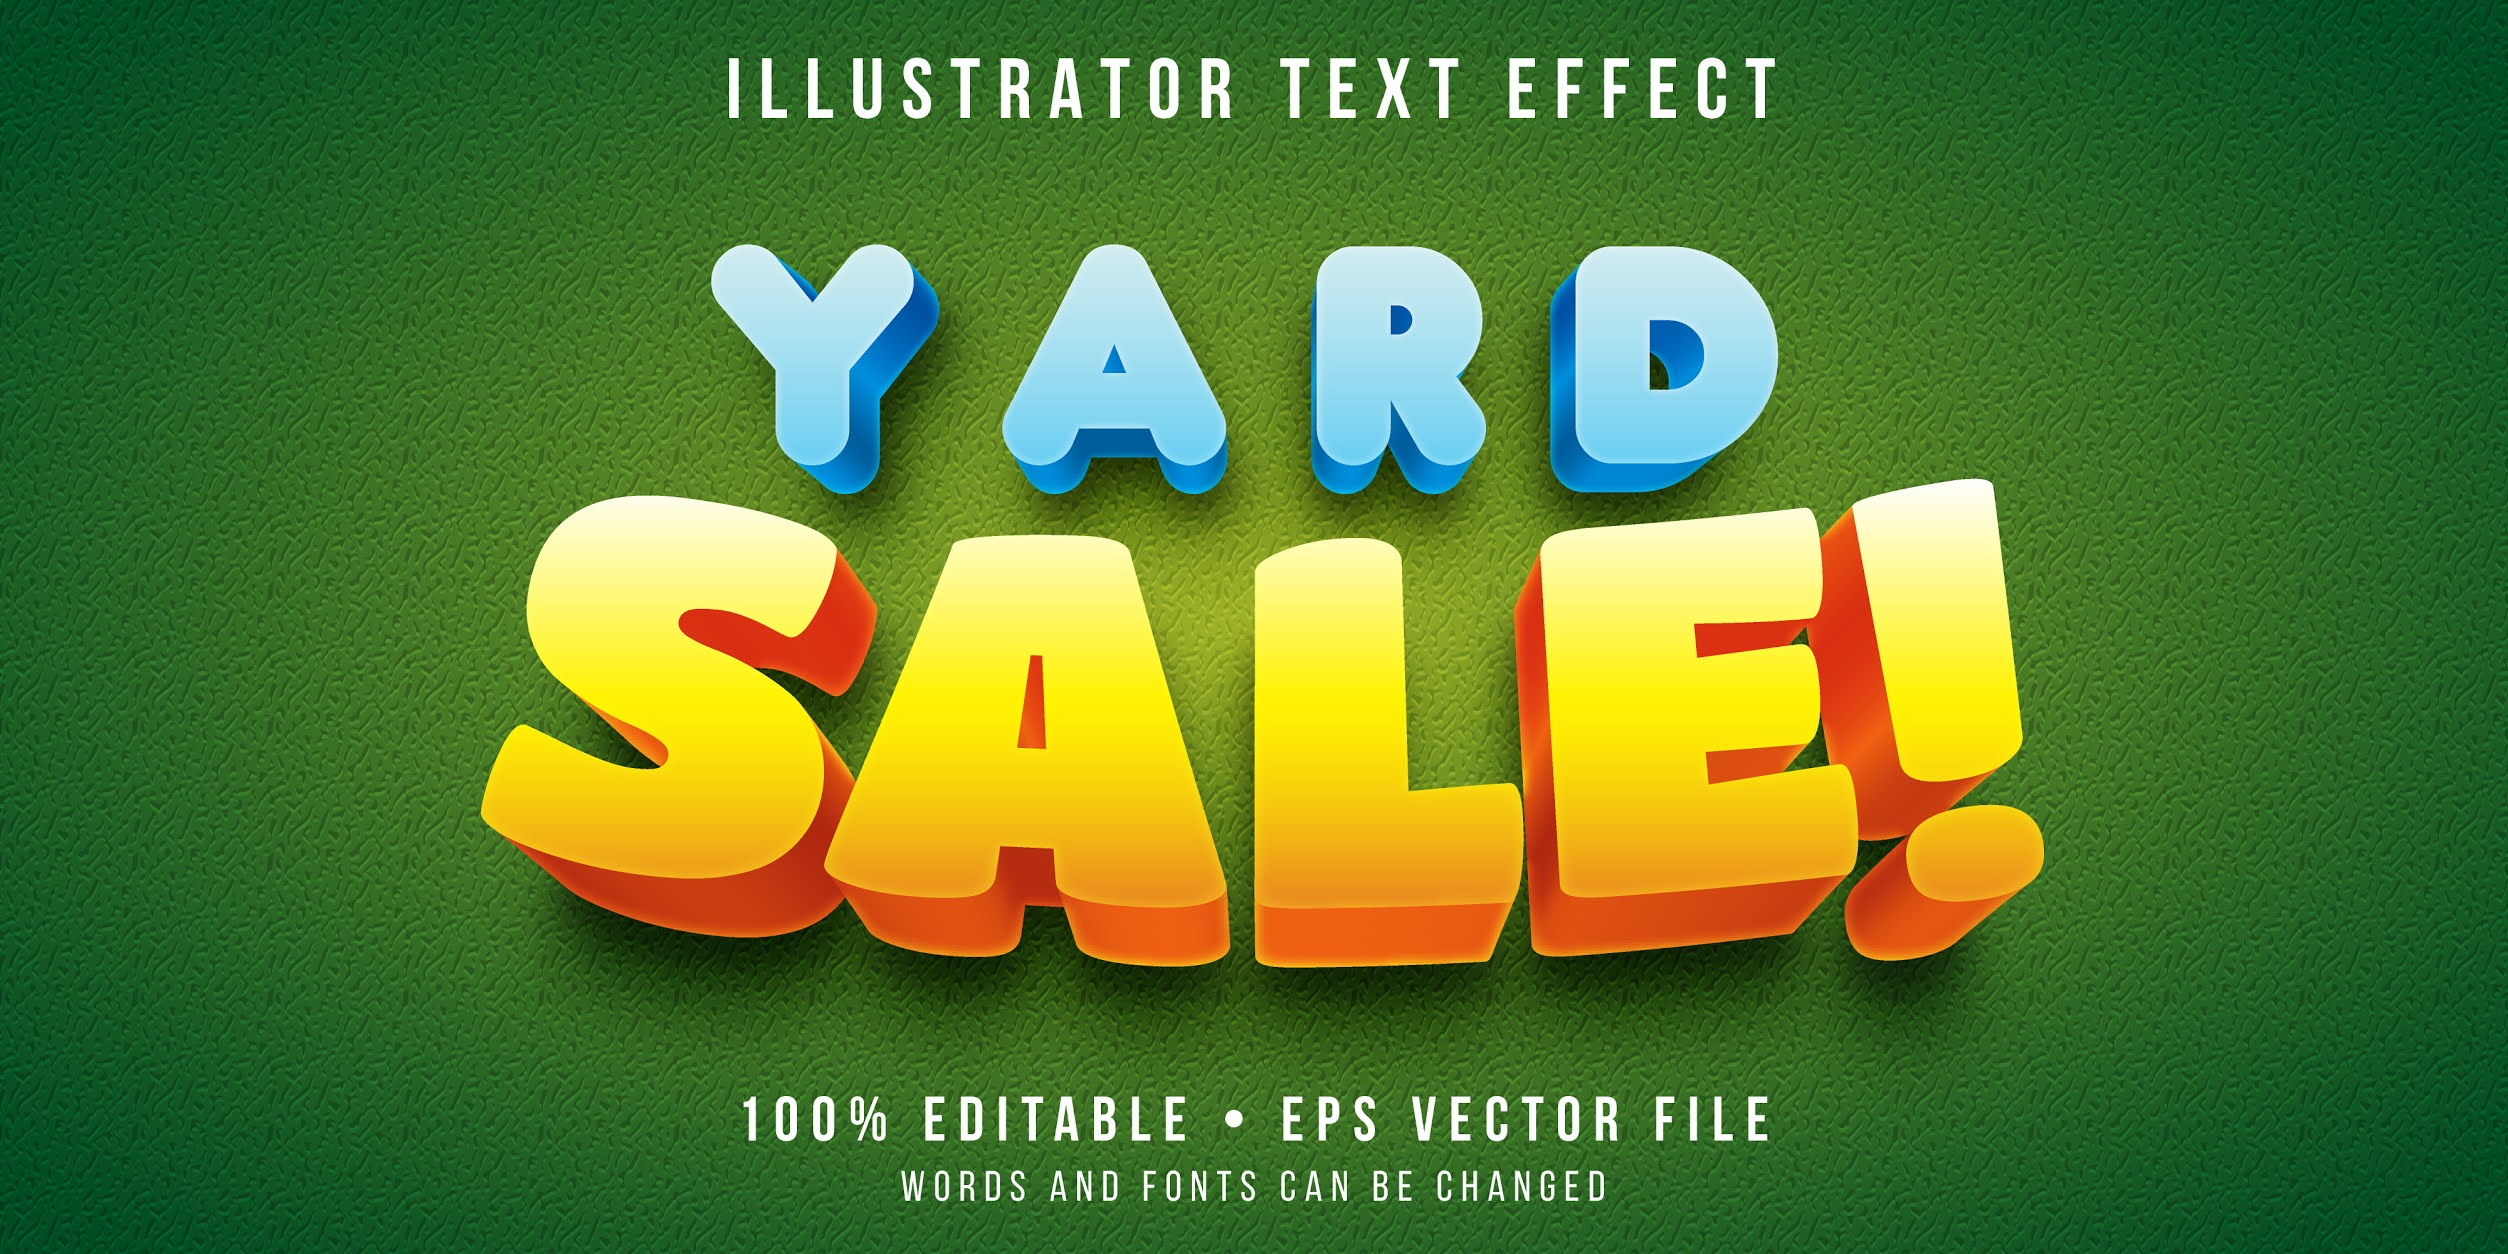 Collection Styles Vector for Illustrator, great professional text effects and styles